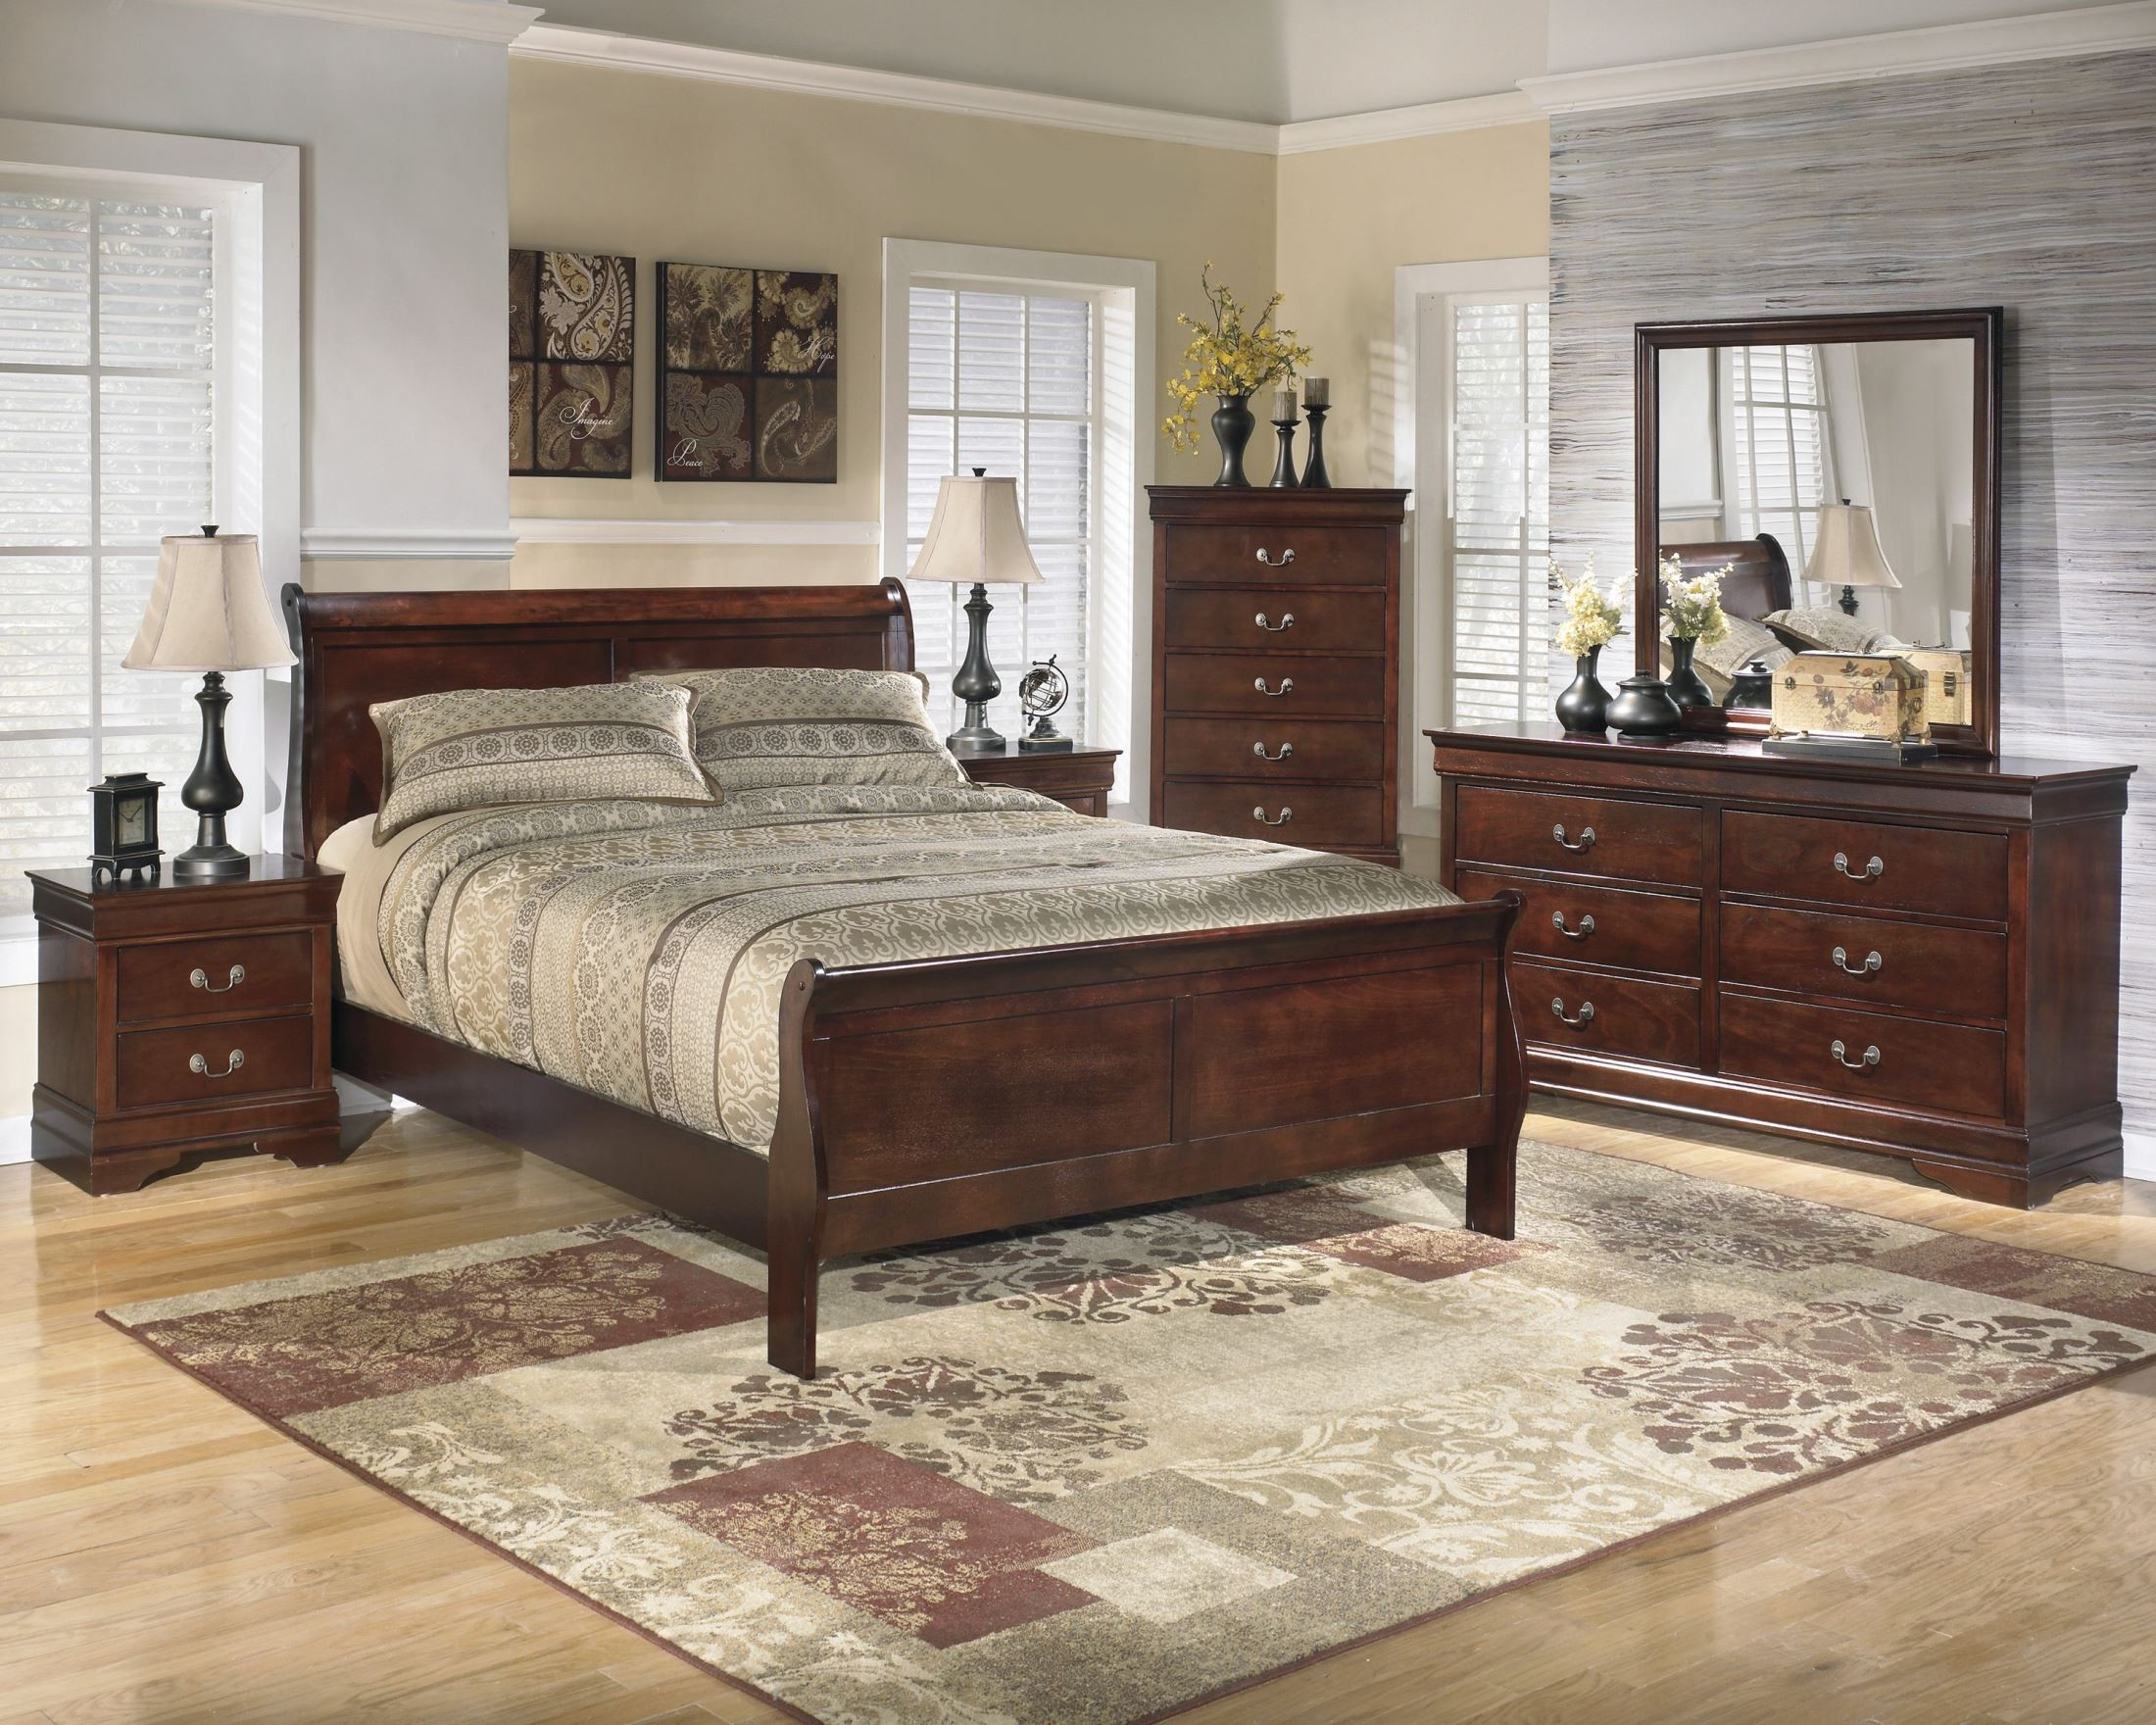 Alisdair Queen Sleigh Bed From Ashley Coleman Furniture